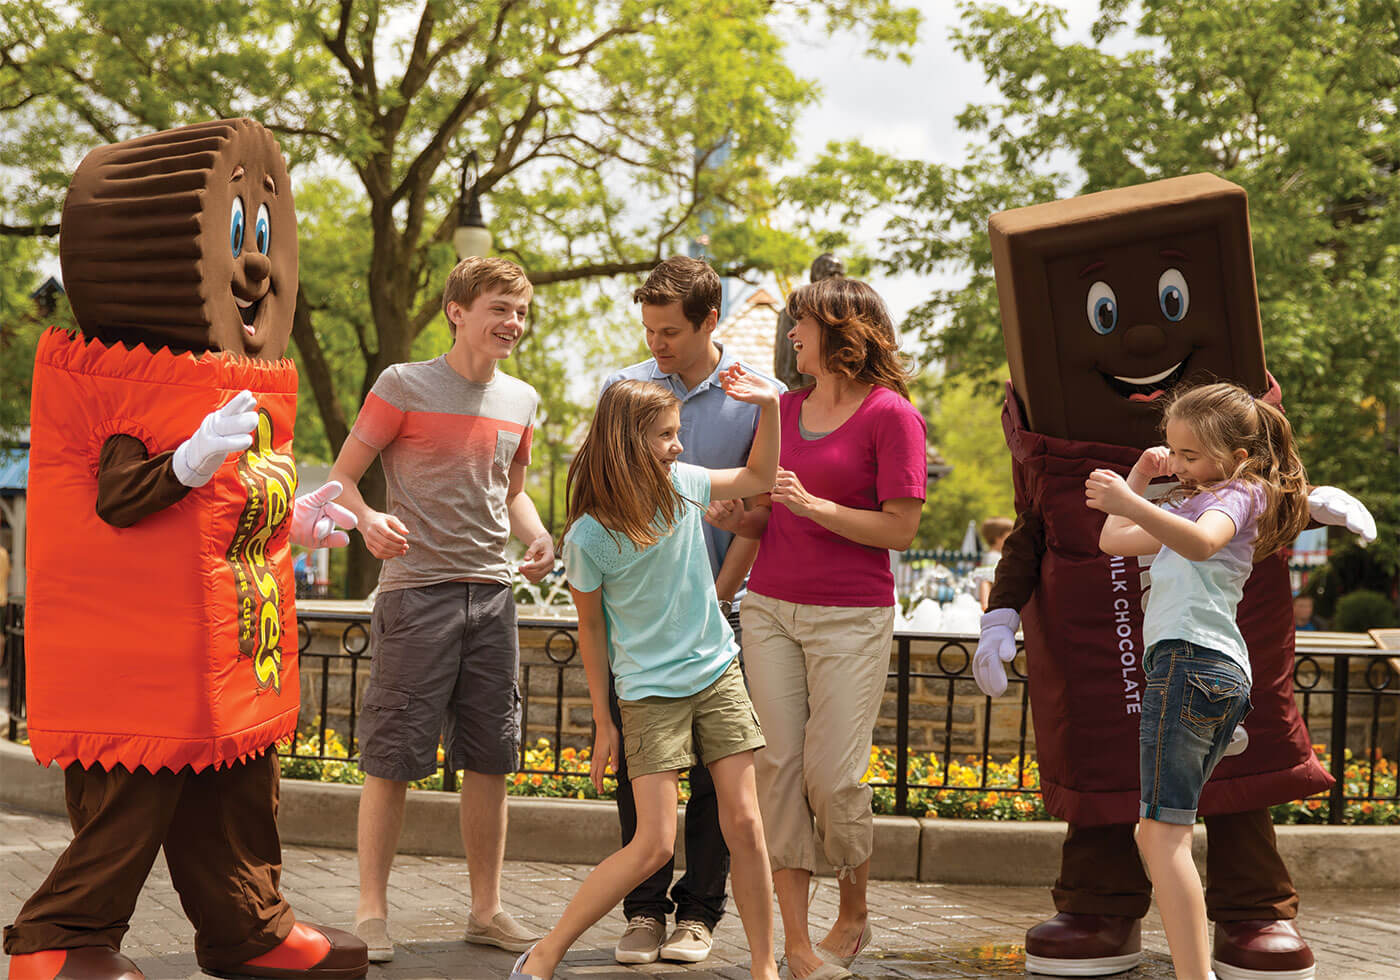 family having fun with Hershey's costume characters